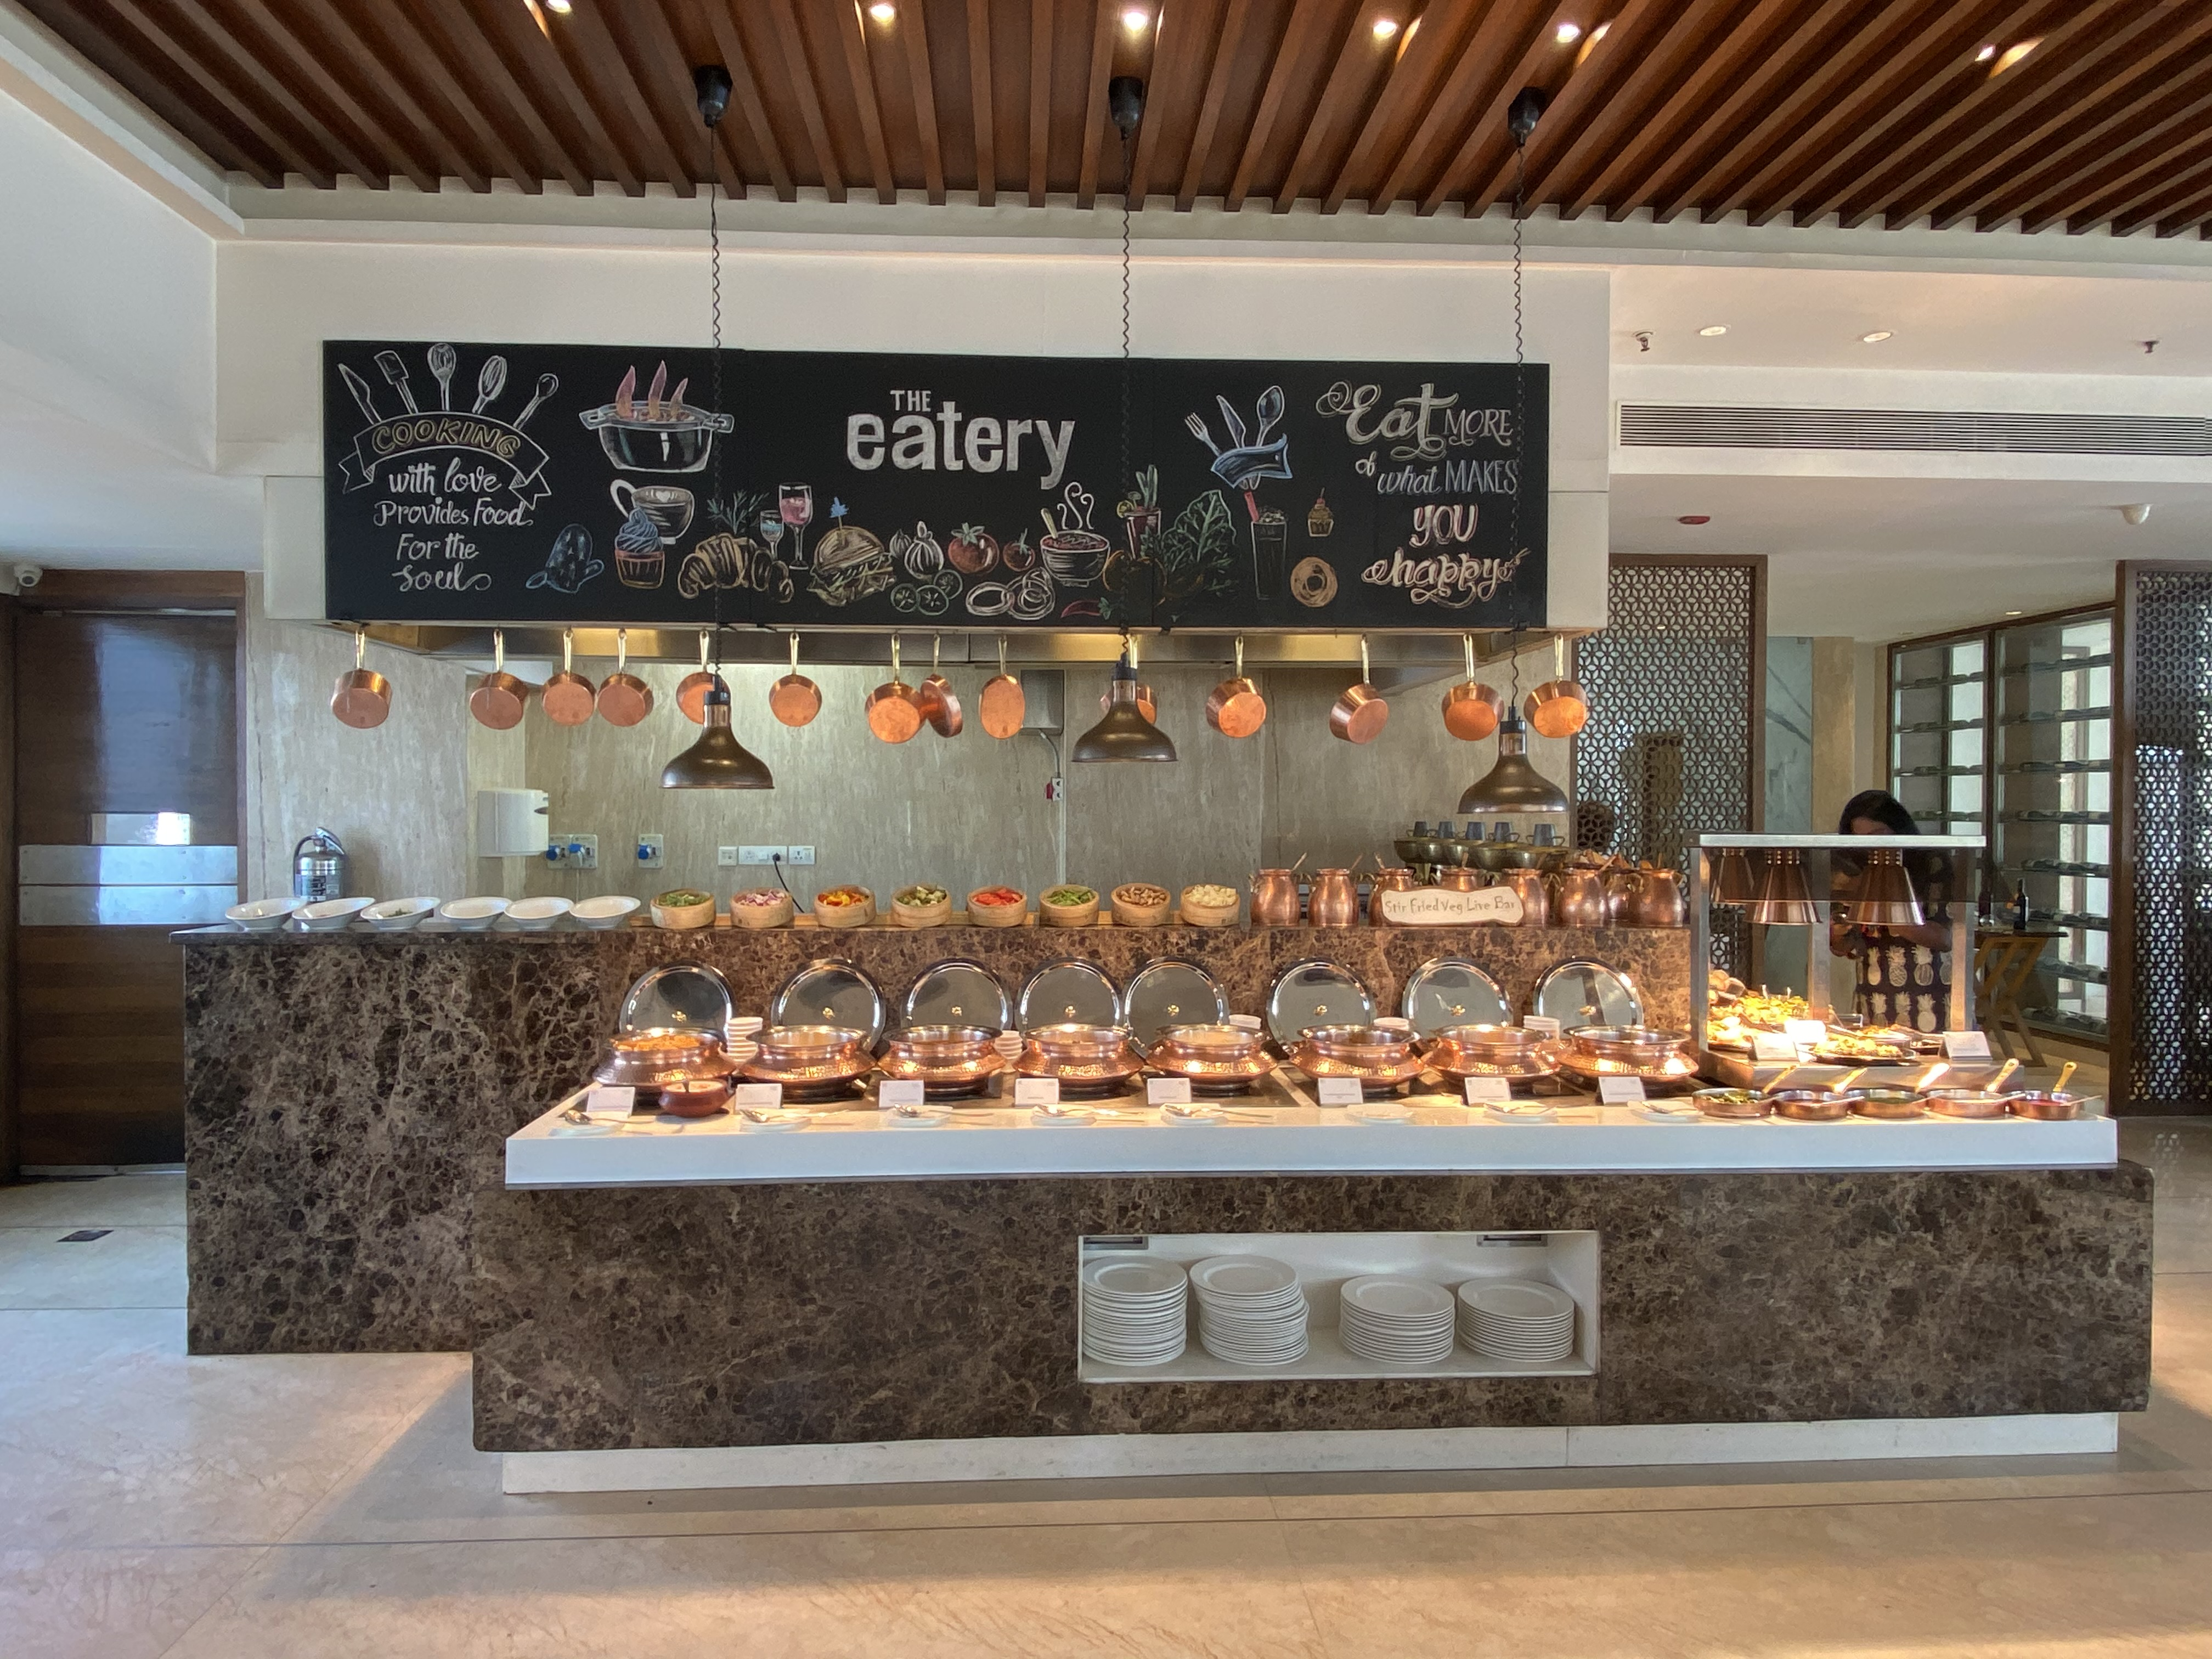 """""""The eatery"""" is all set to serve their new menu!"""